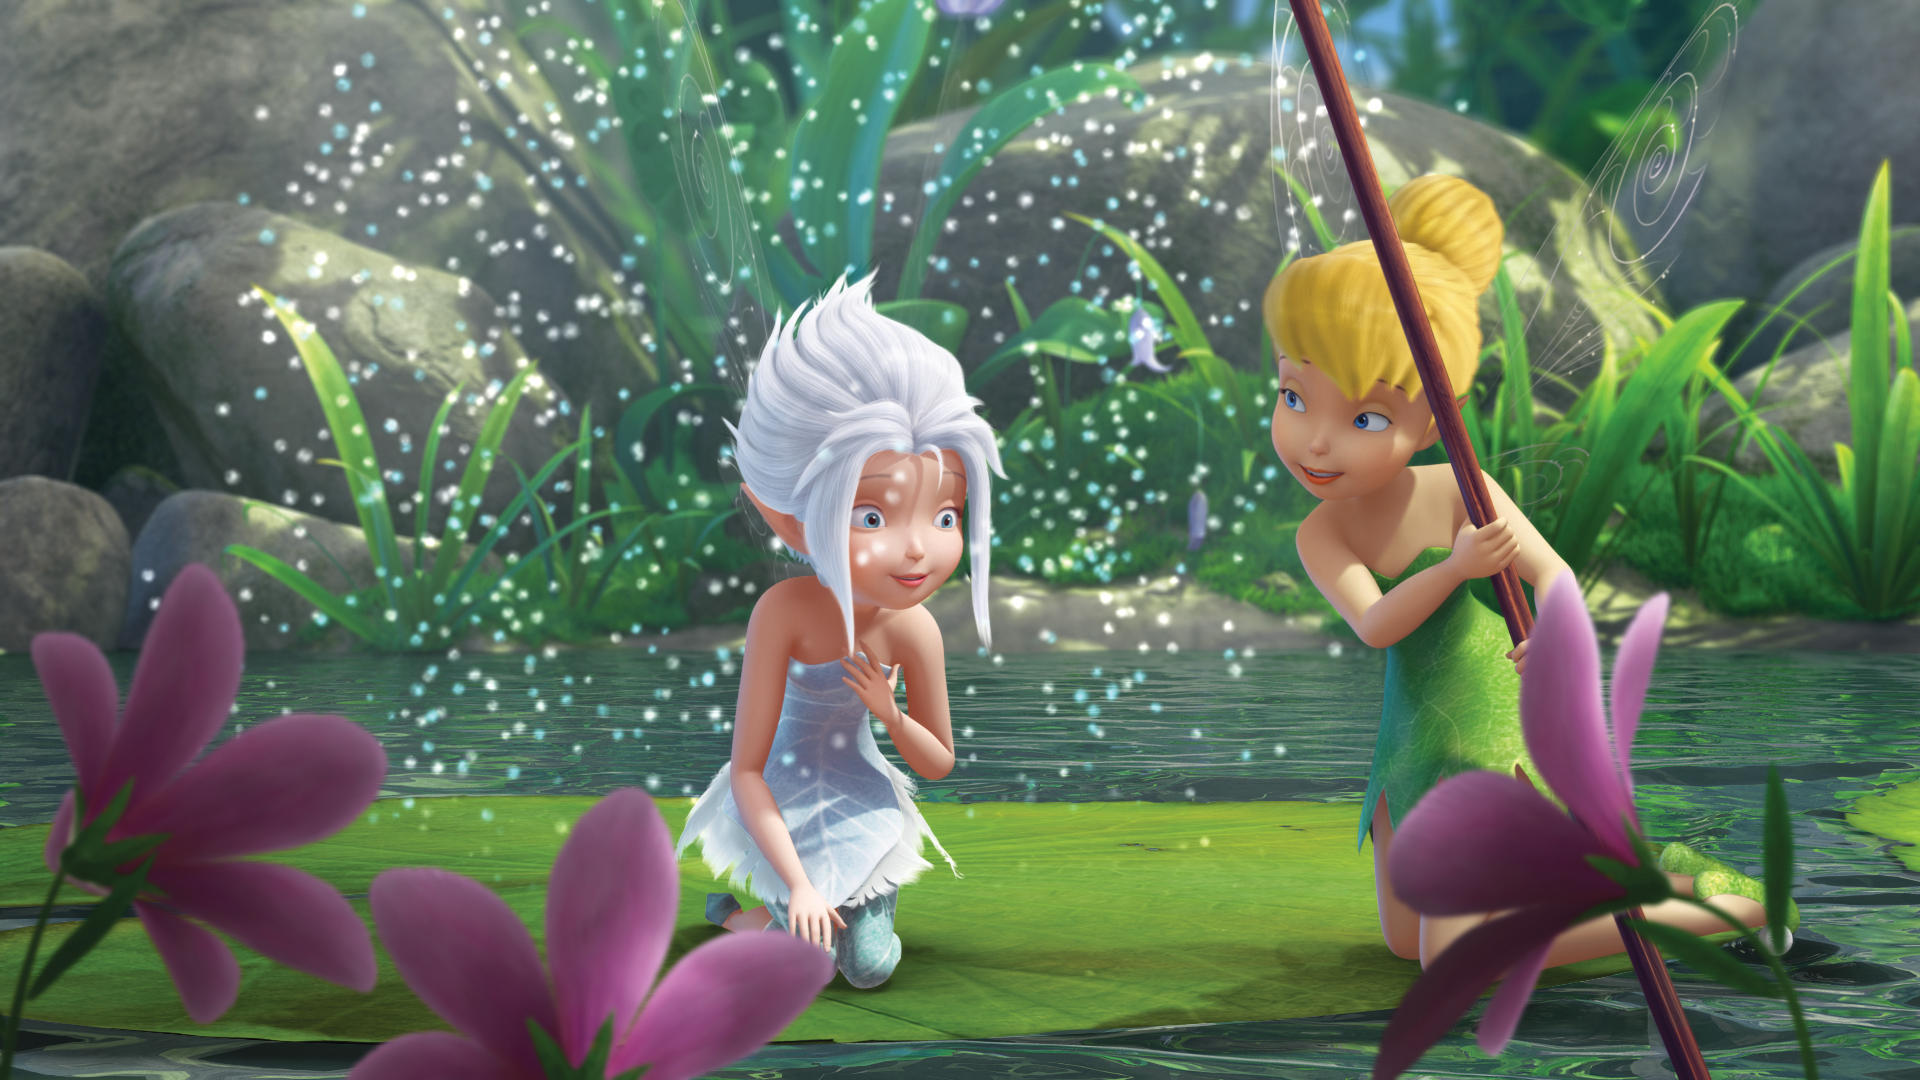 Tinkerbell The Mysterious Winter Woods Images Tinkerbell